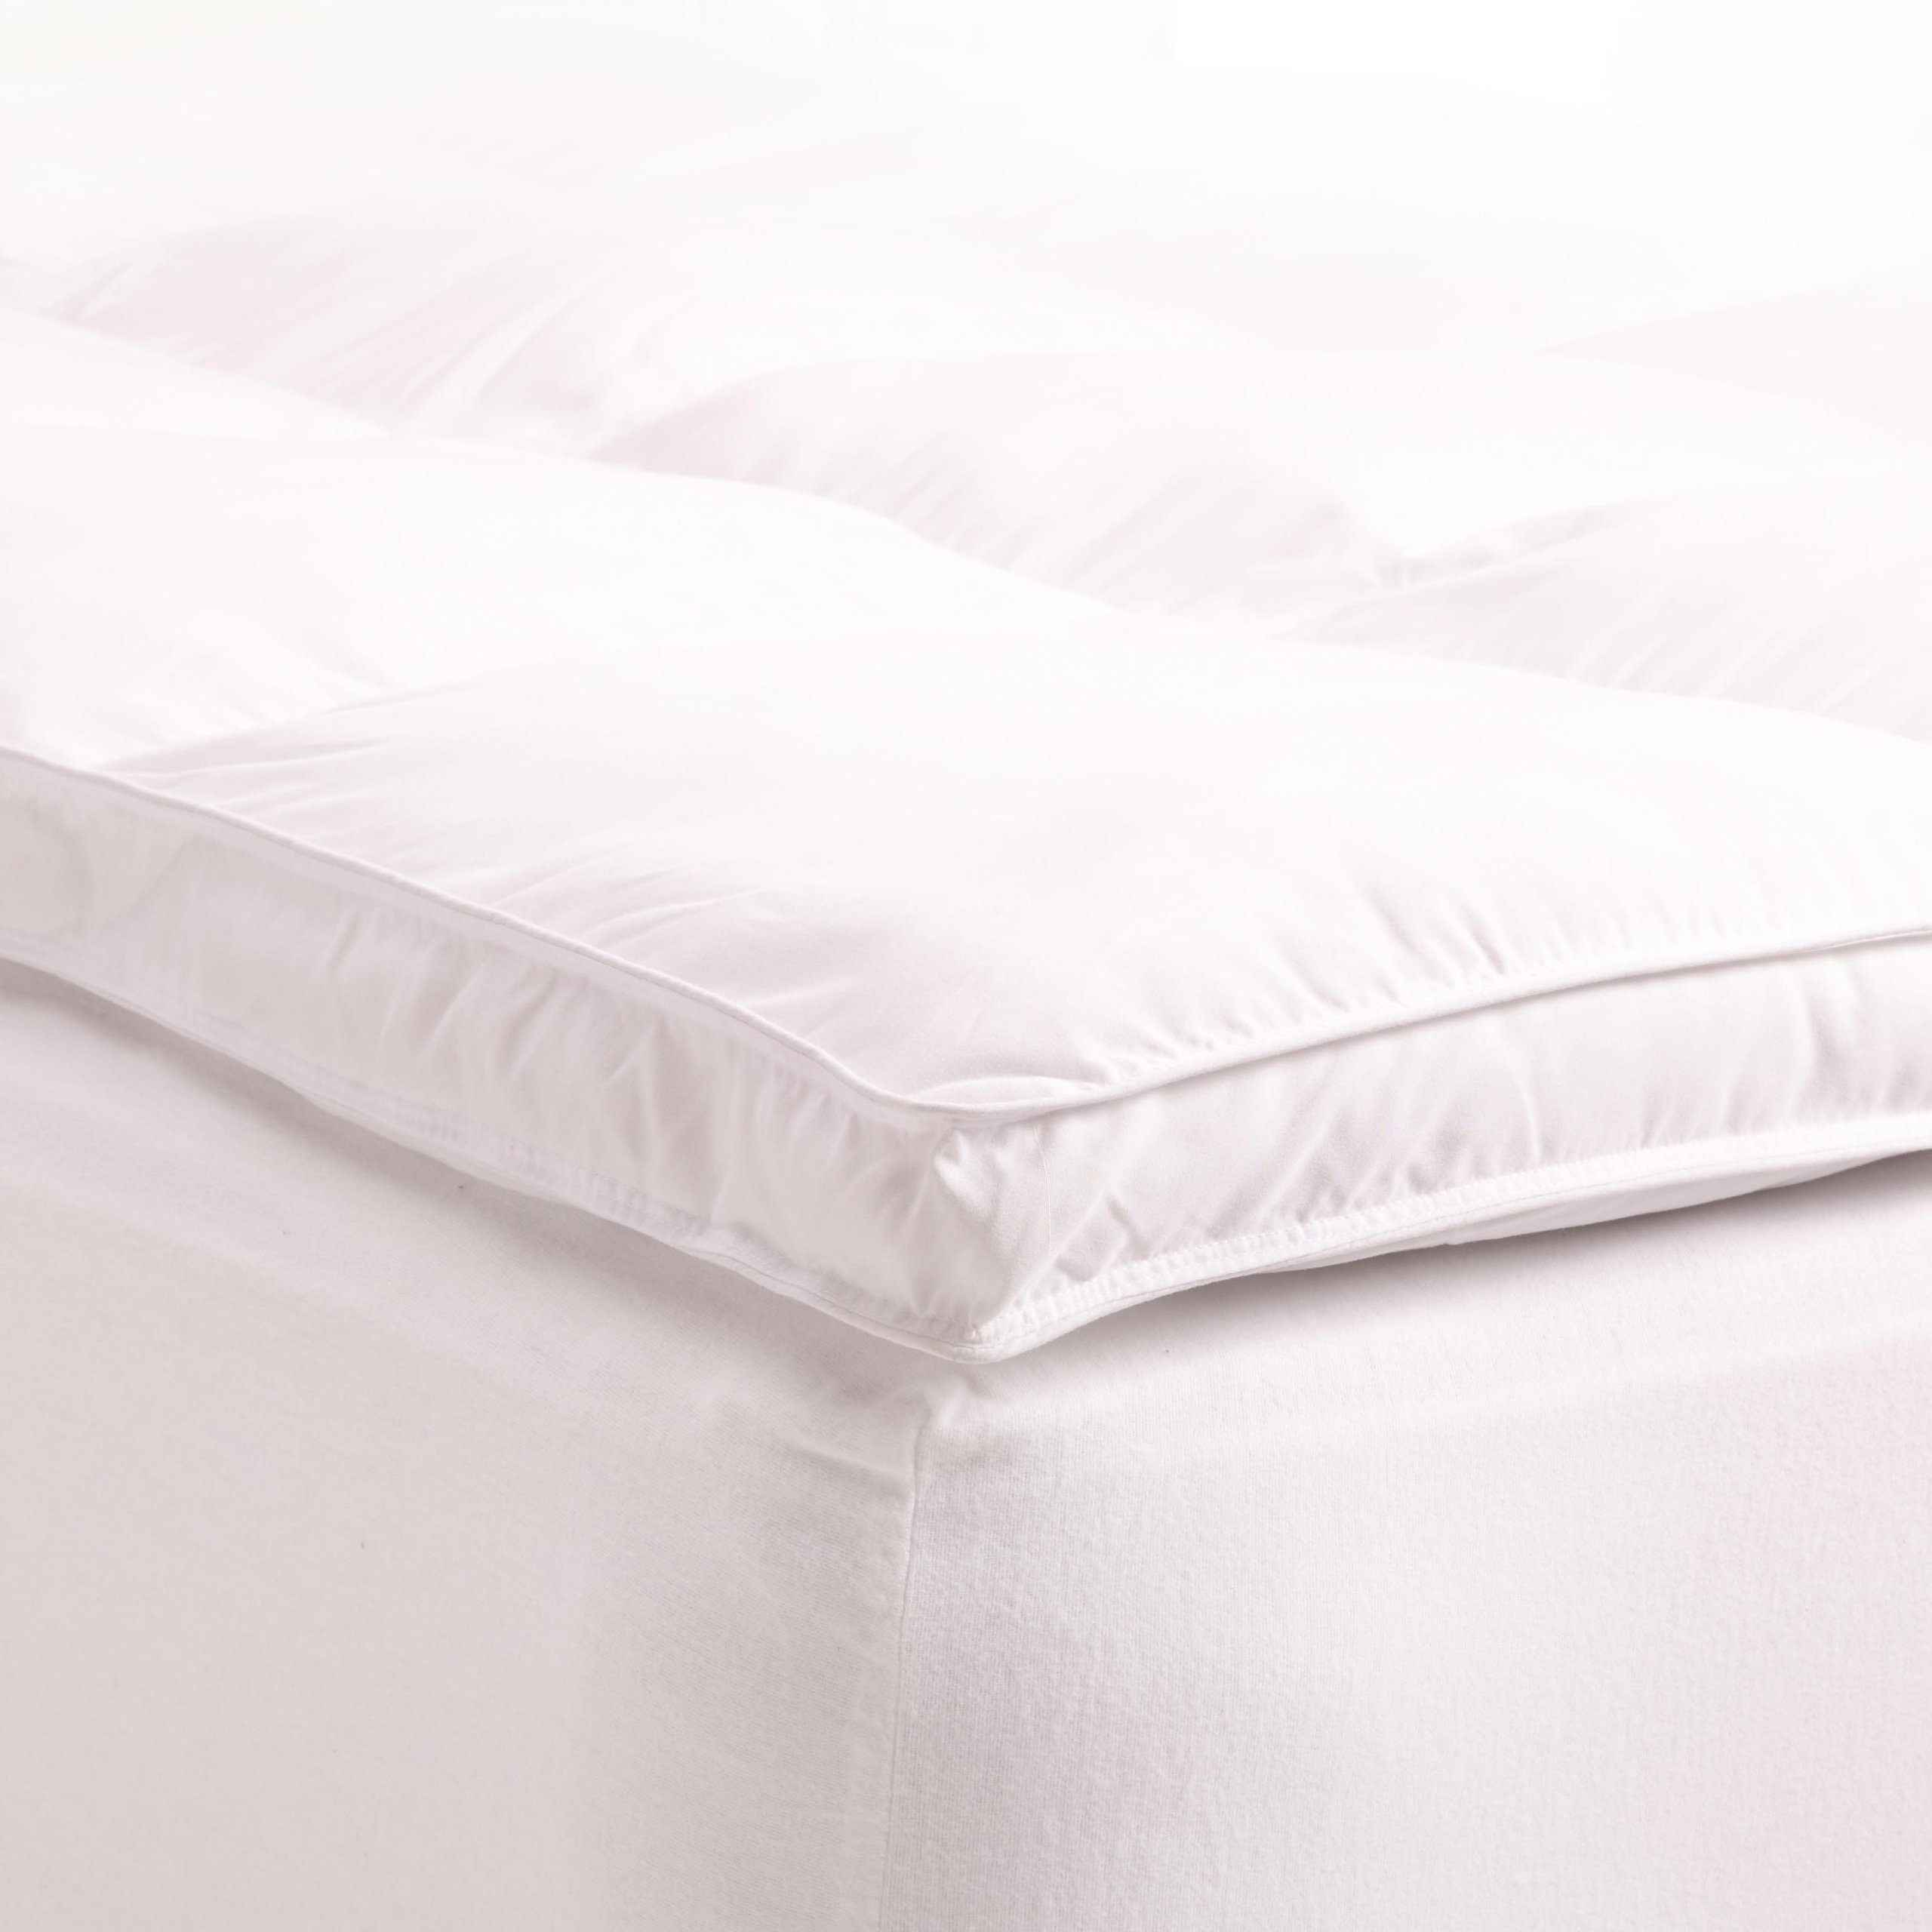 Superior Twin Mattress Topper, Hypoallergenic White Down Alternative Featherbed Mattress Pad - Plush, Overfilled, and 2'' Thick